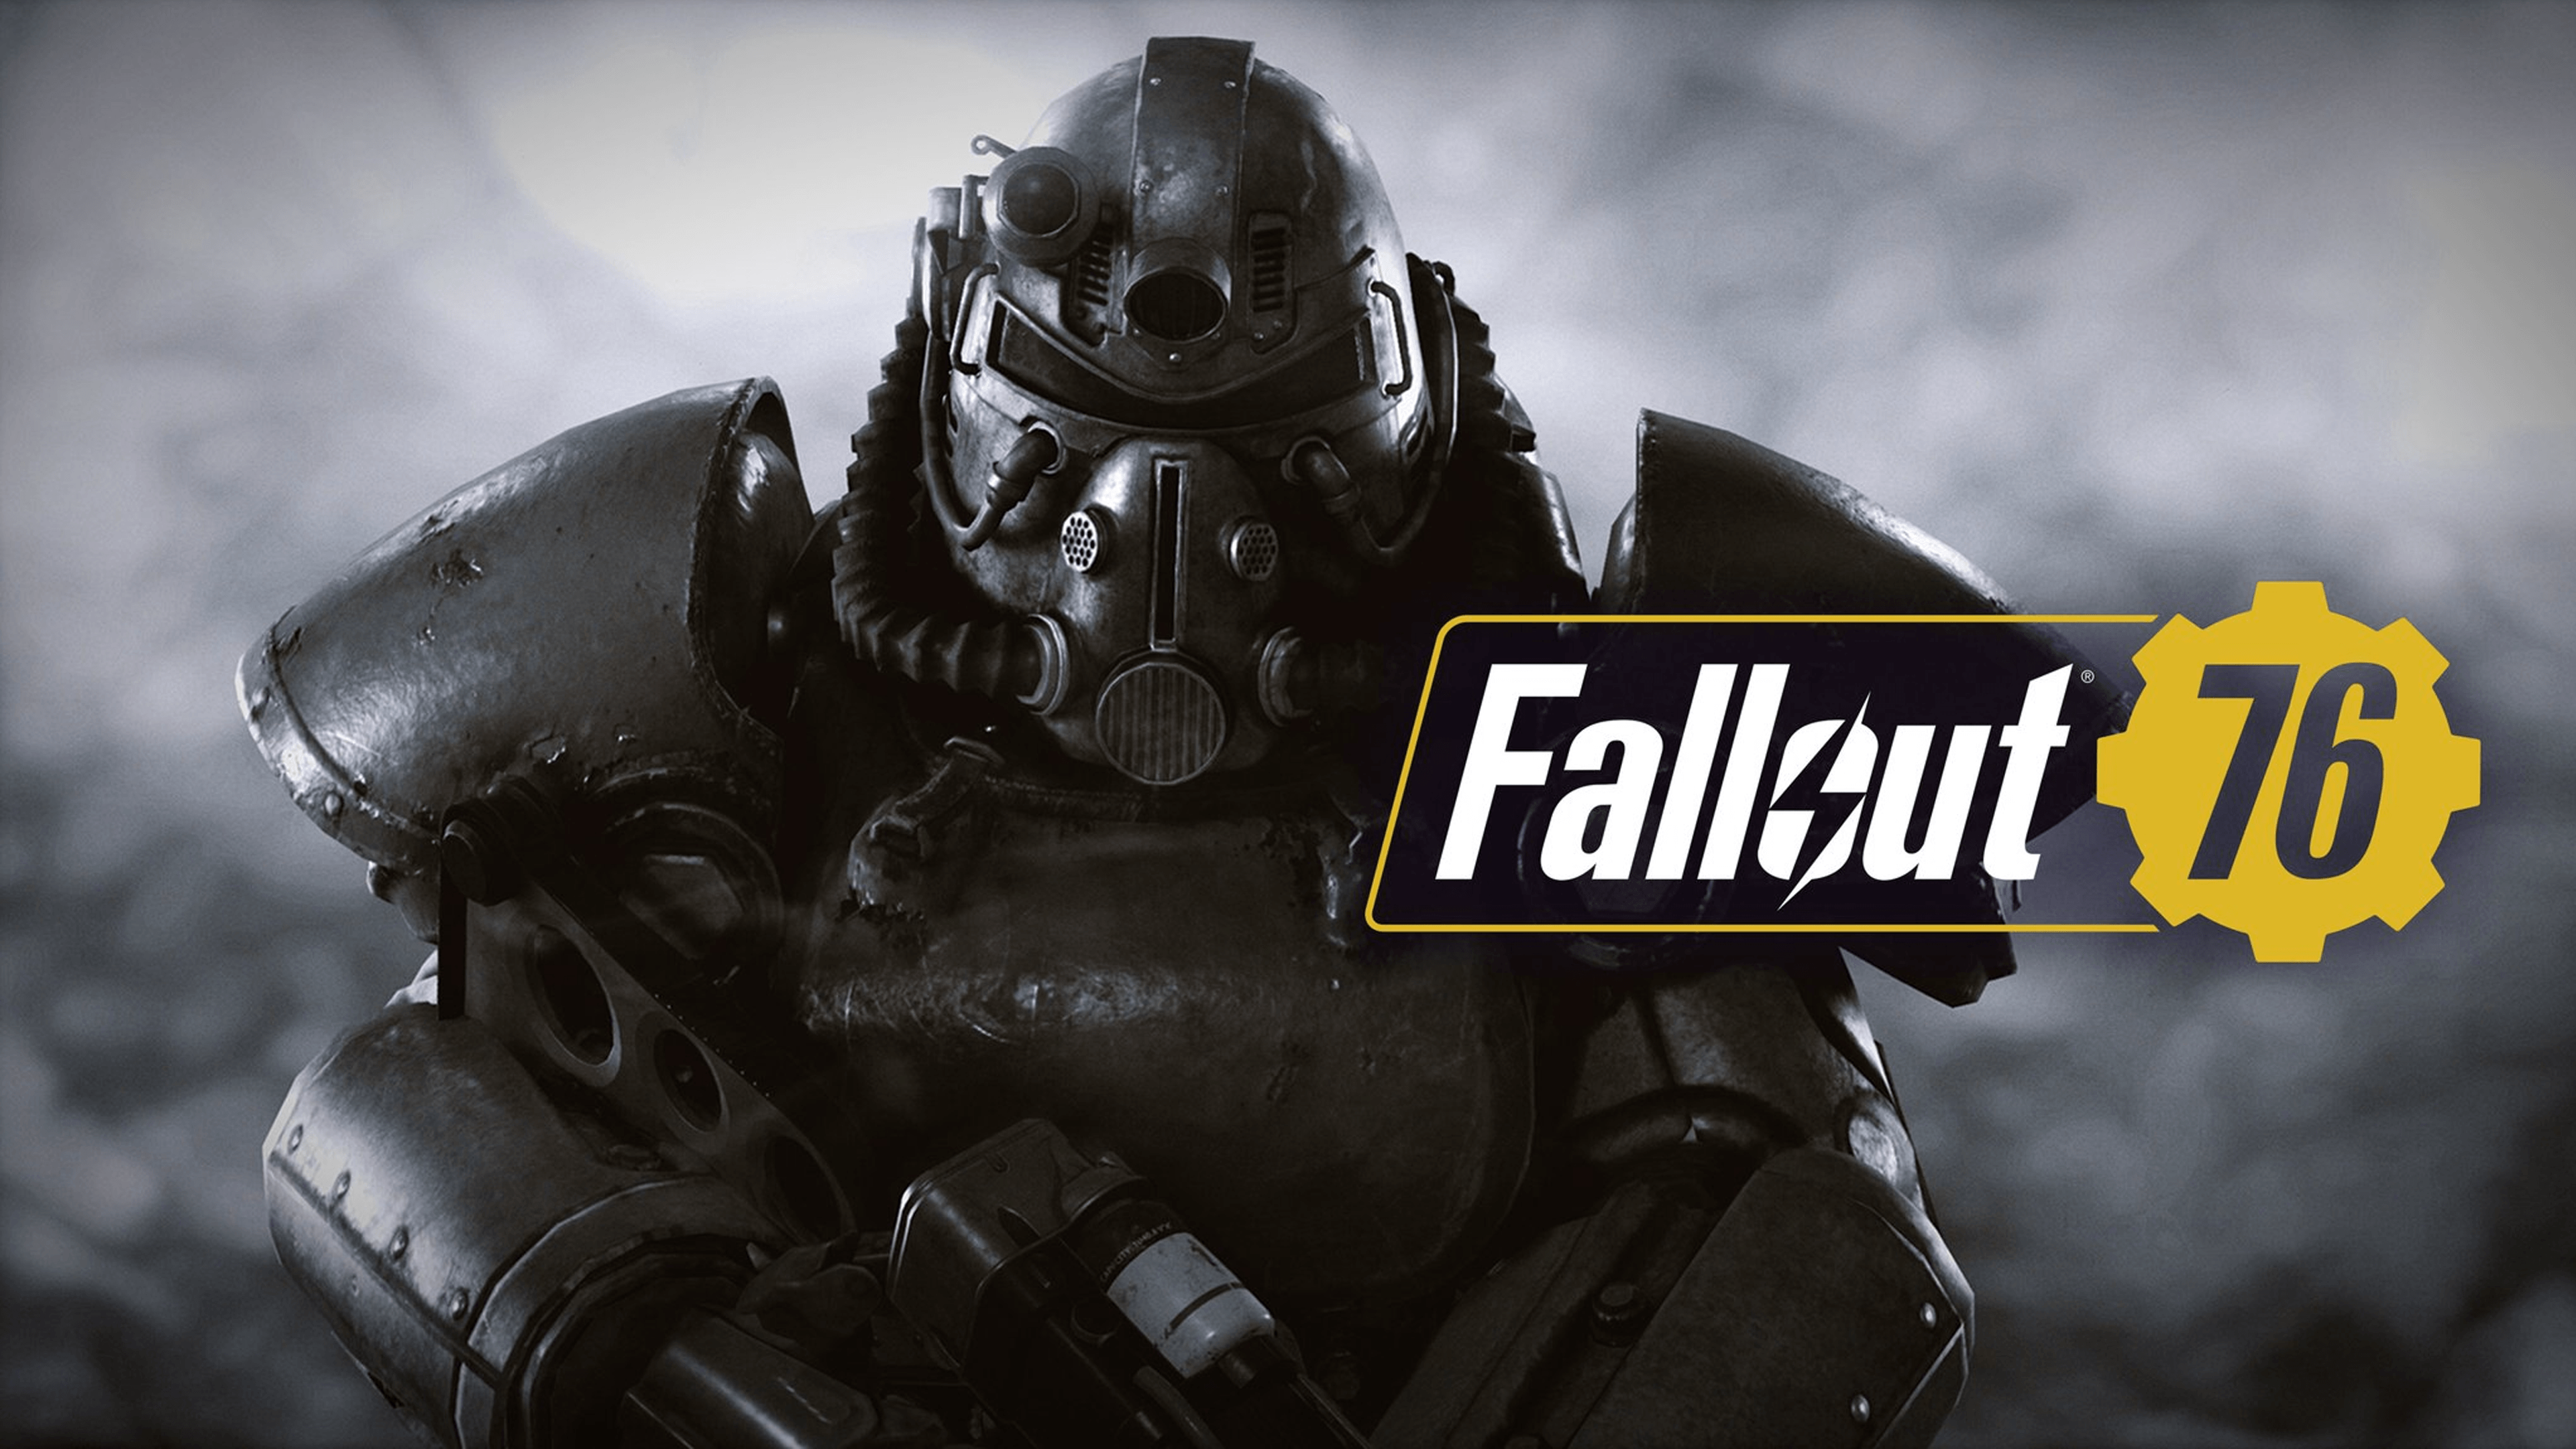 Fallout 76 Wallpapers Top Free Fallout 76 Backgrounds